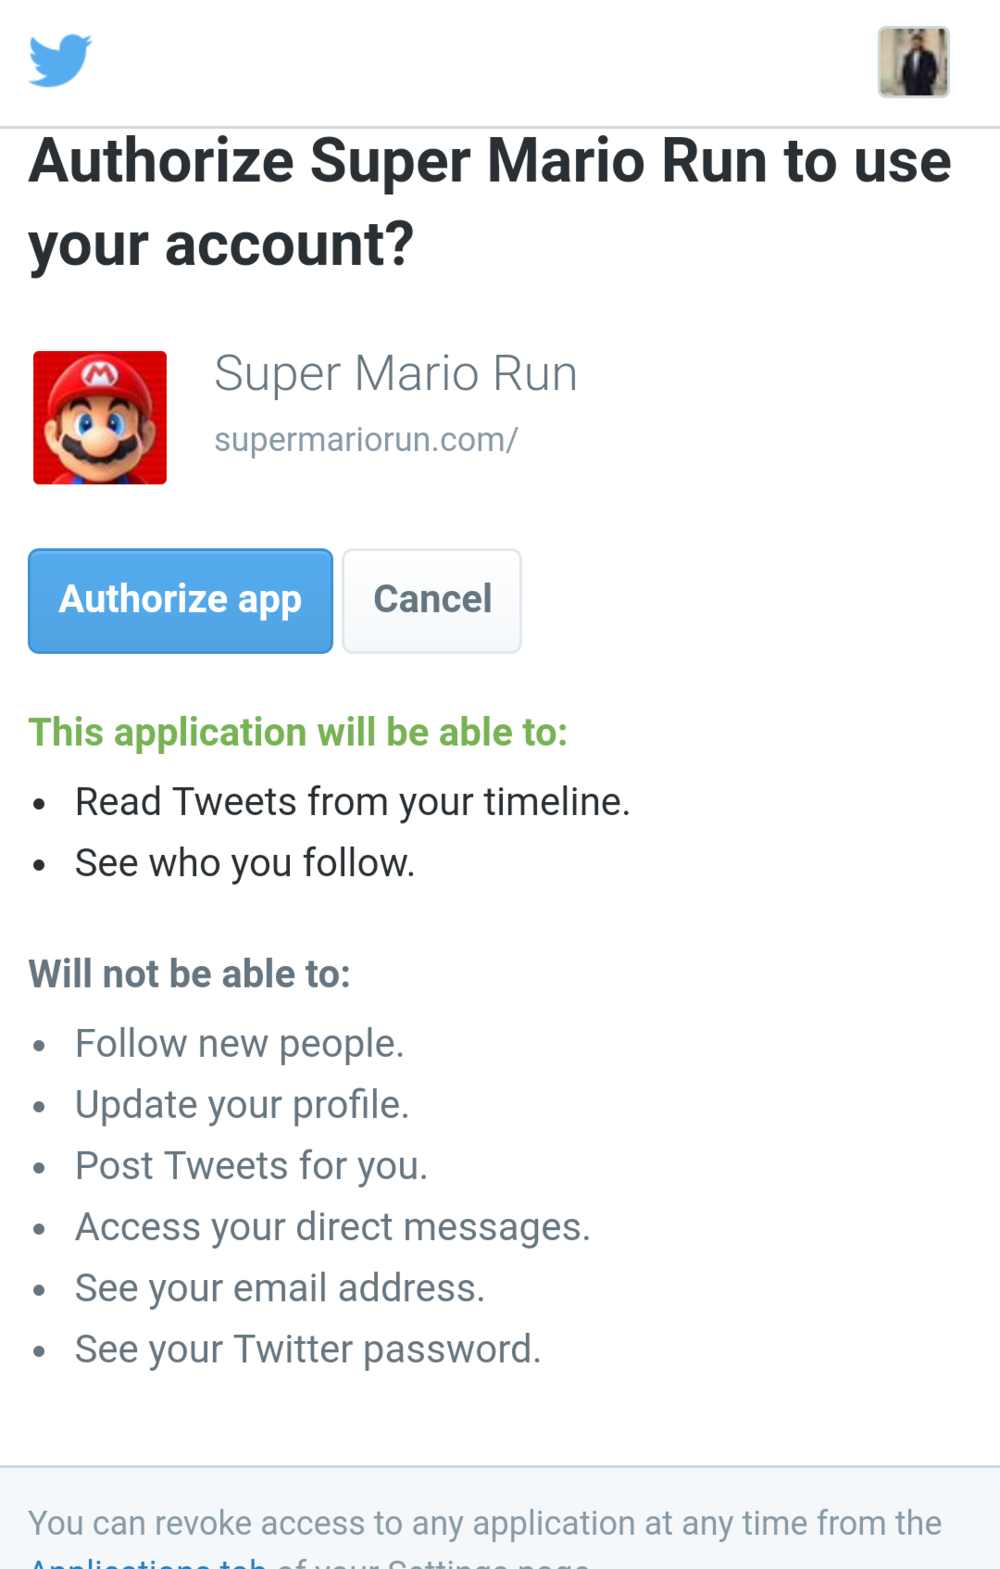 The Twitter authorization page itself looks a bit daunting. After authorizing, there were only 2 other Super Mario Run players that the app could find.